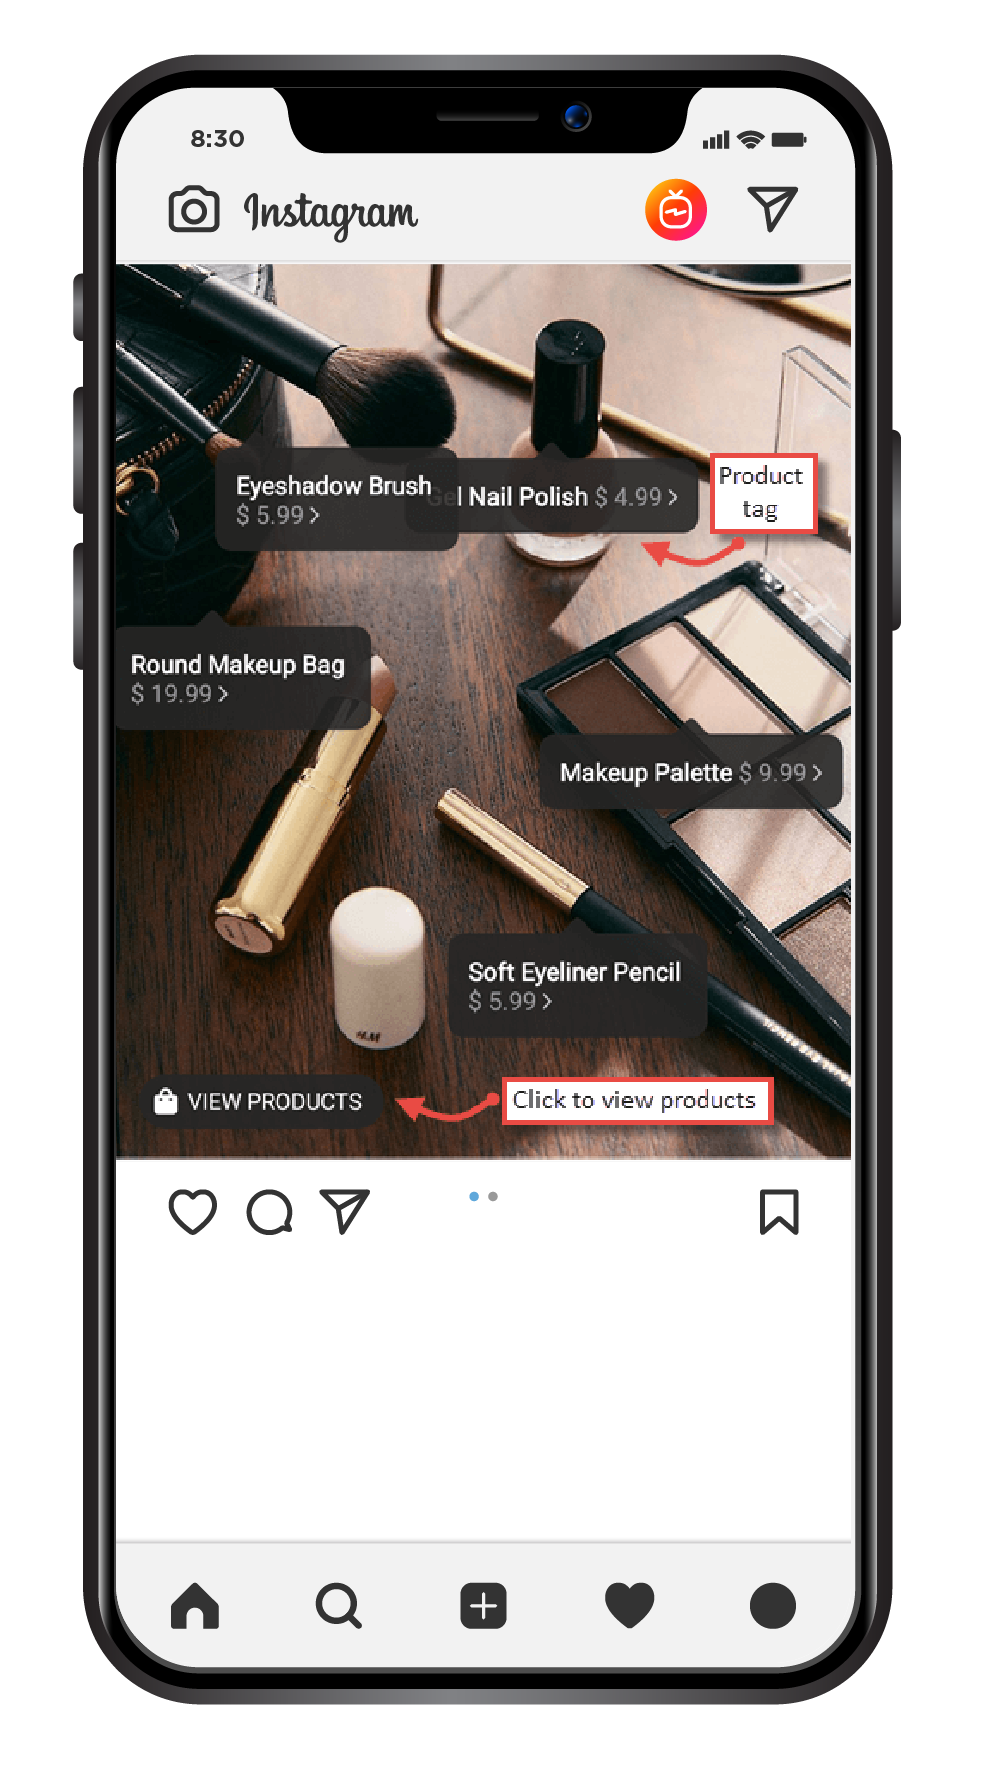 Product Tags on Instagram Image